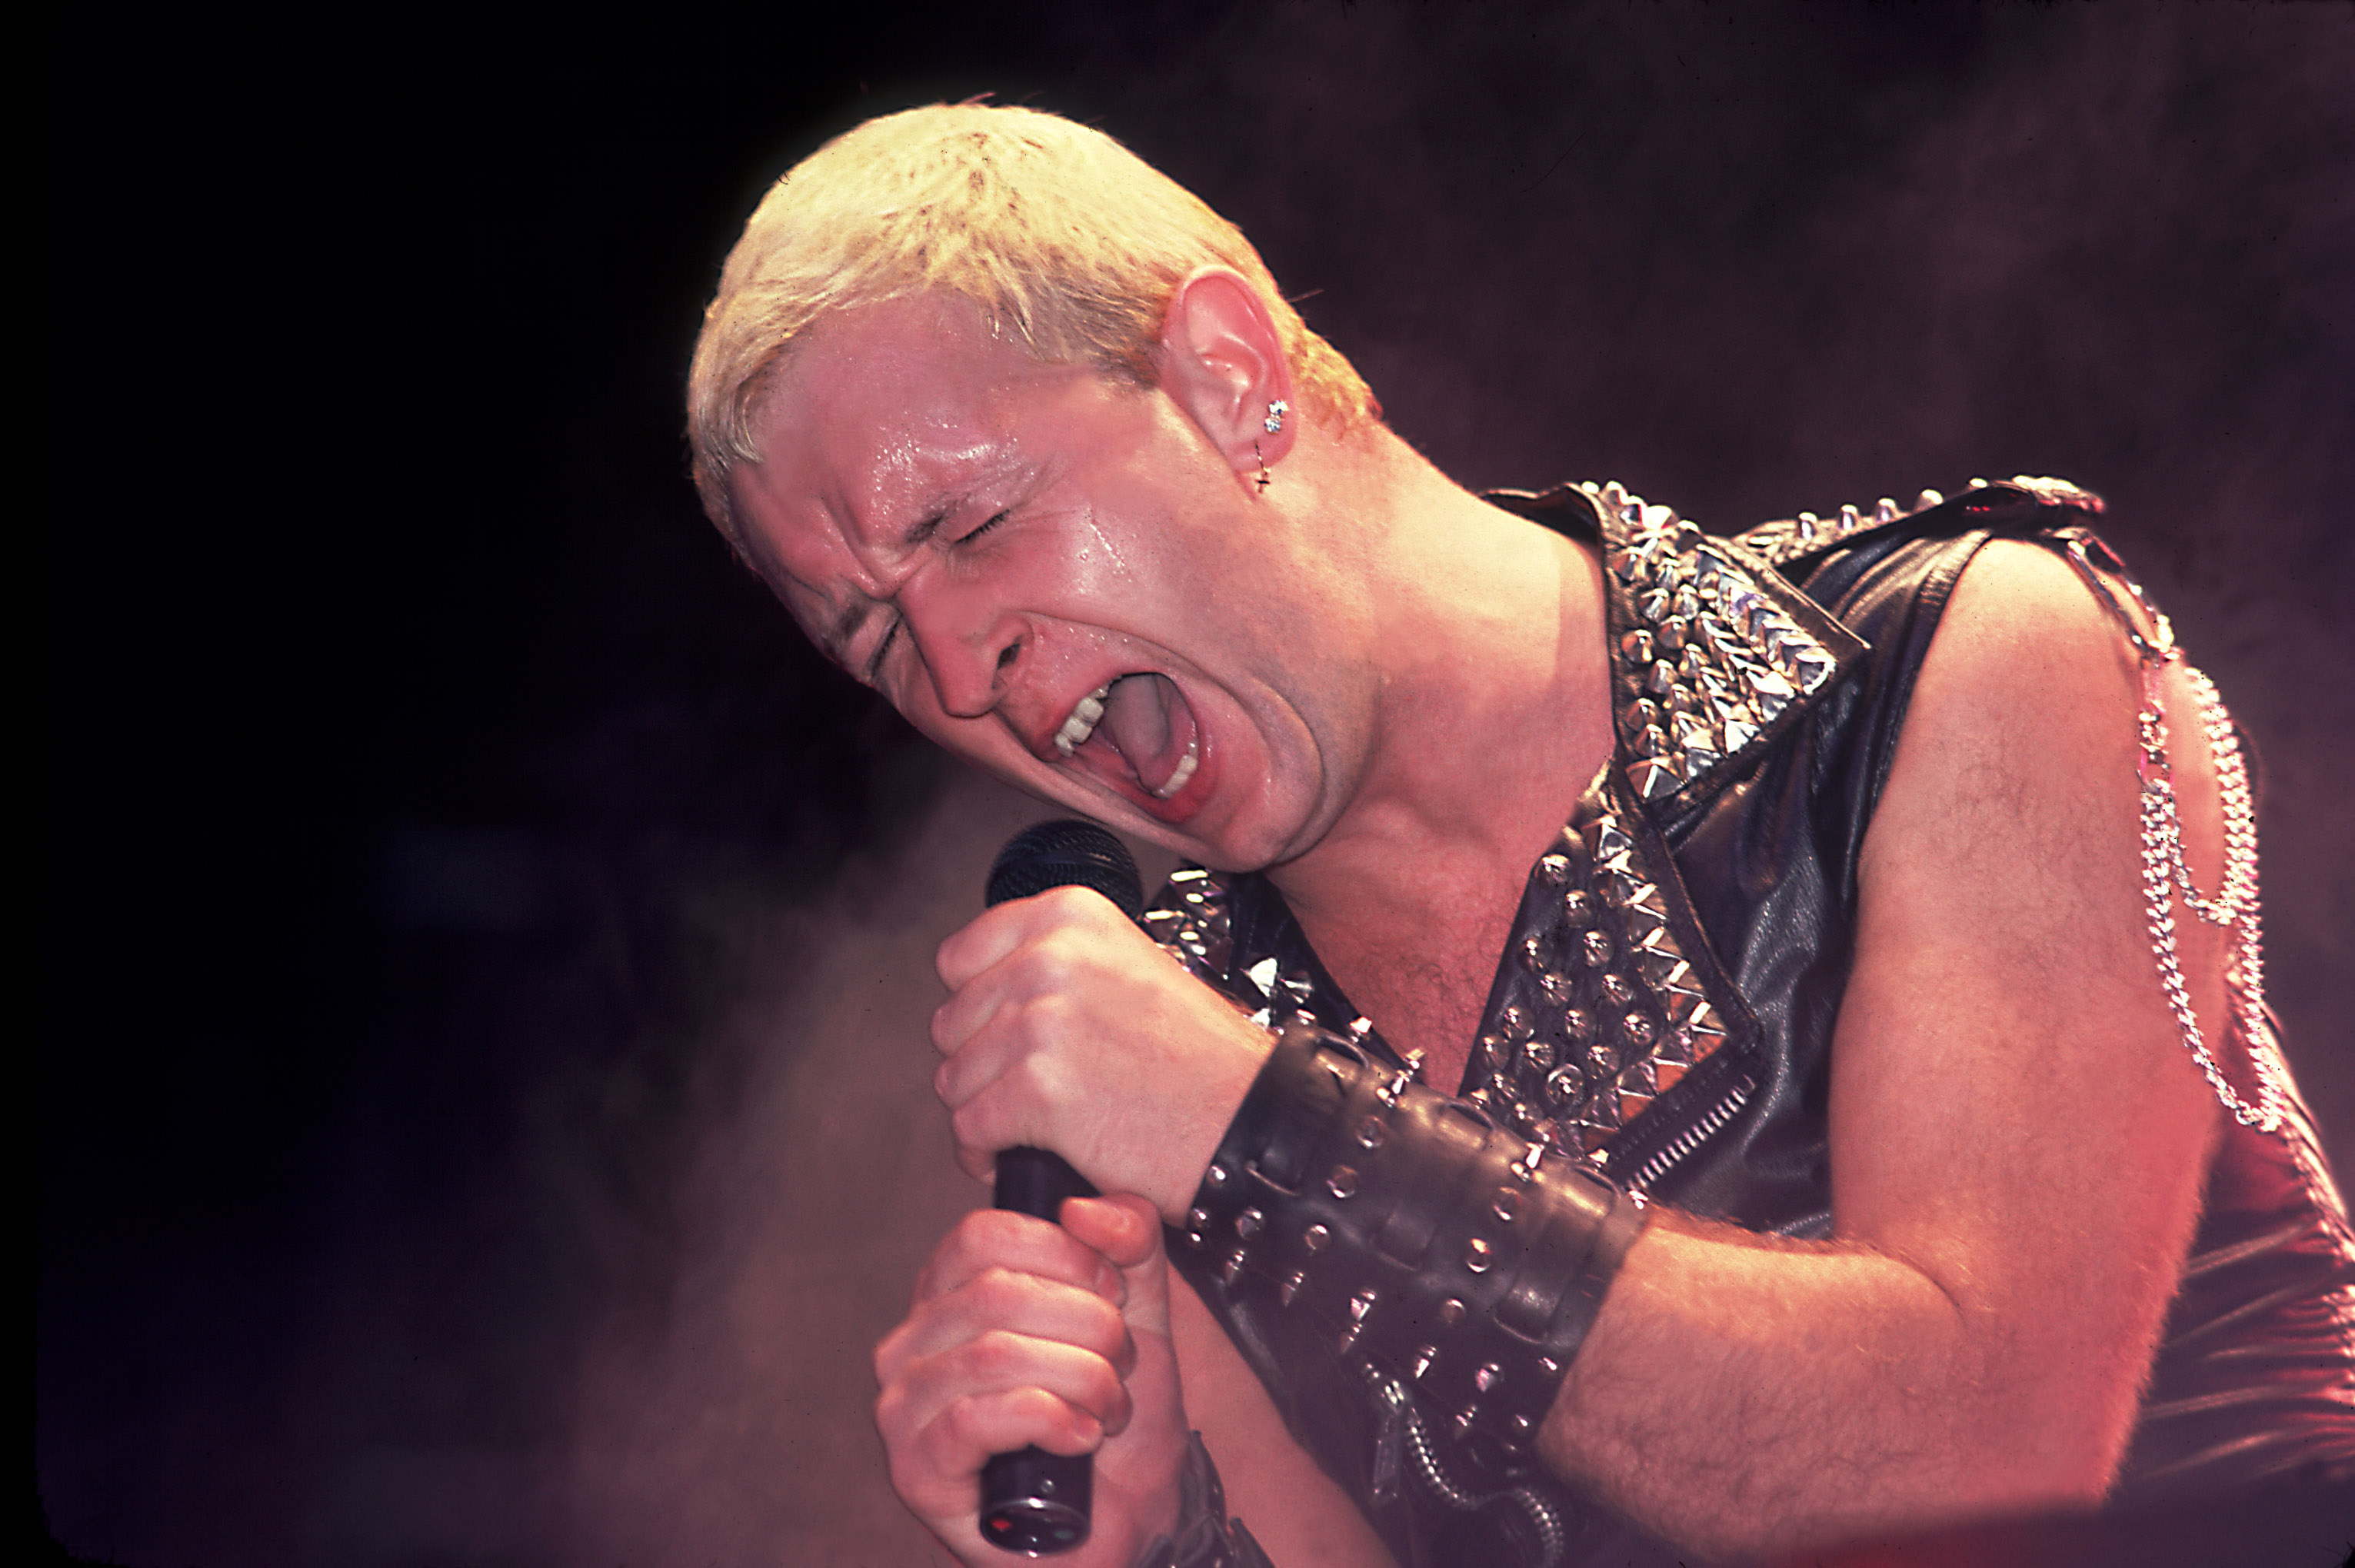 Judas Priest's Rob Halford wants to be a judge on 'RuPaul's Drag Race'